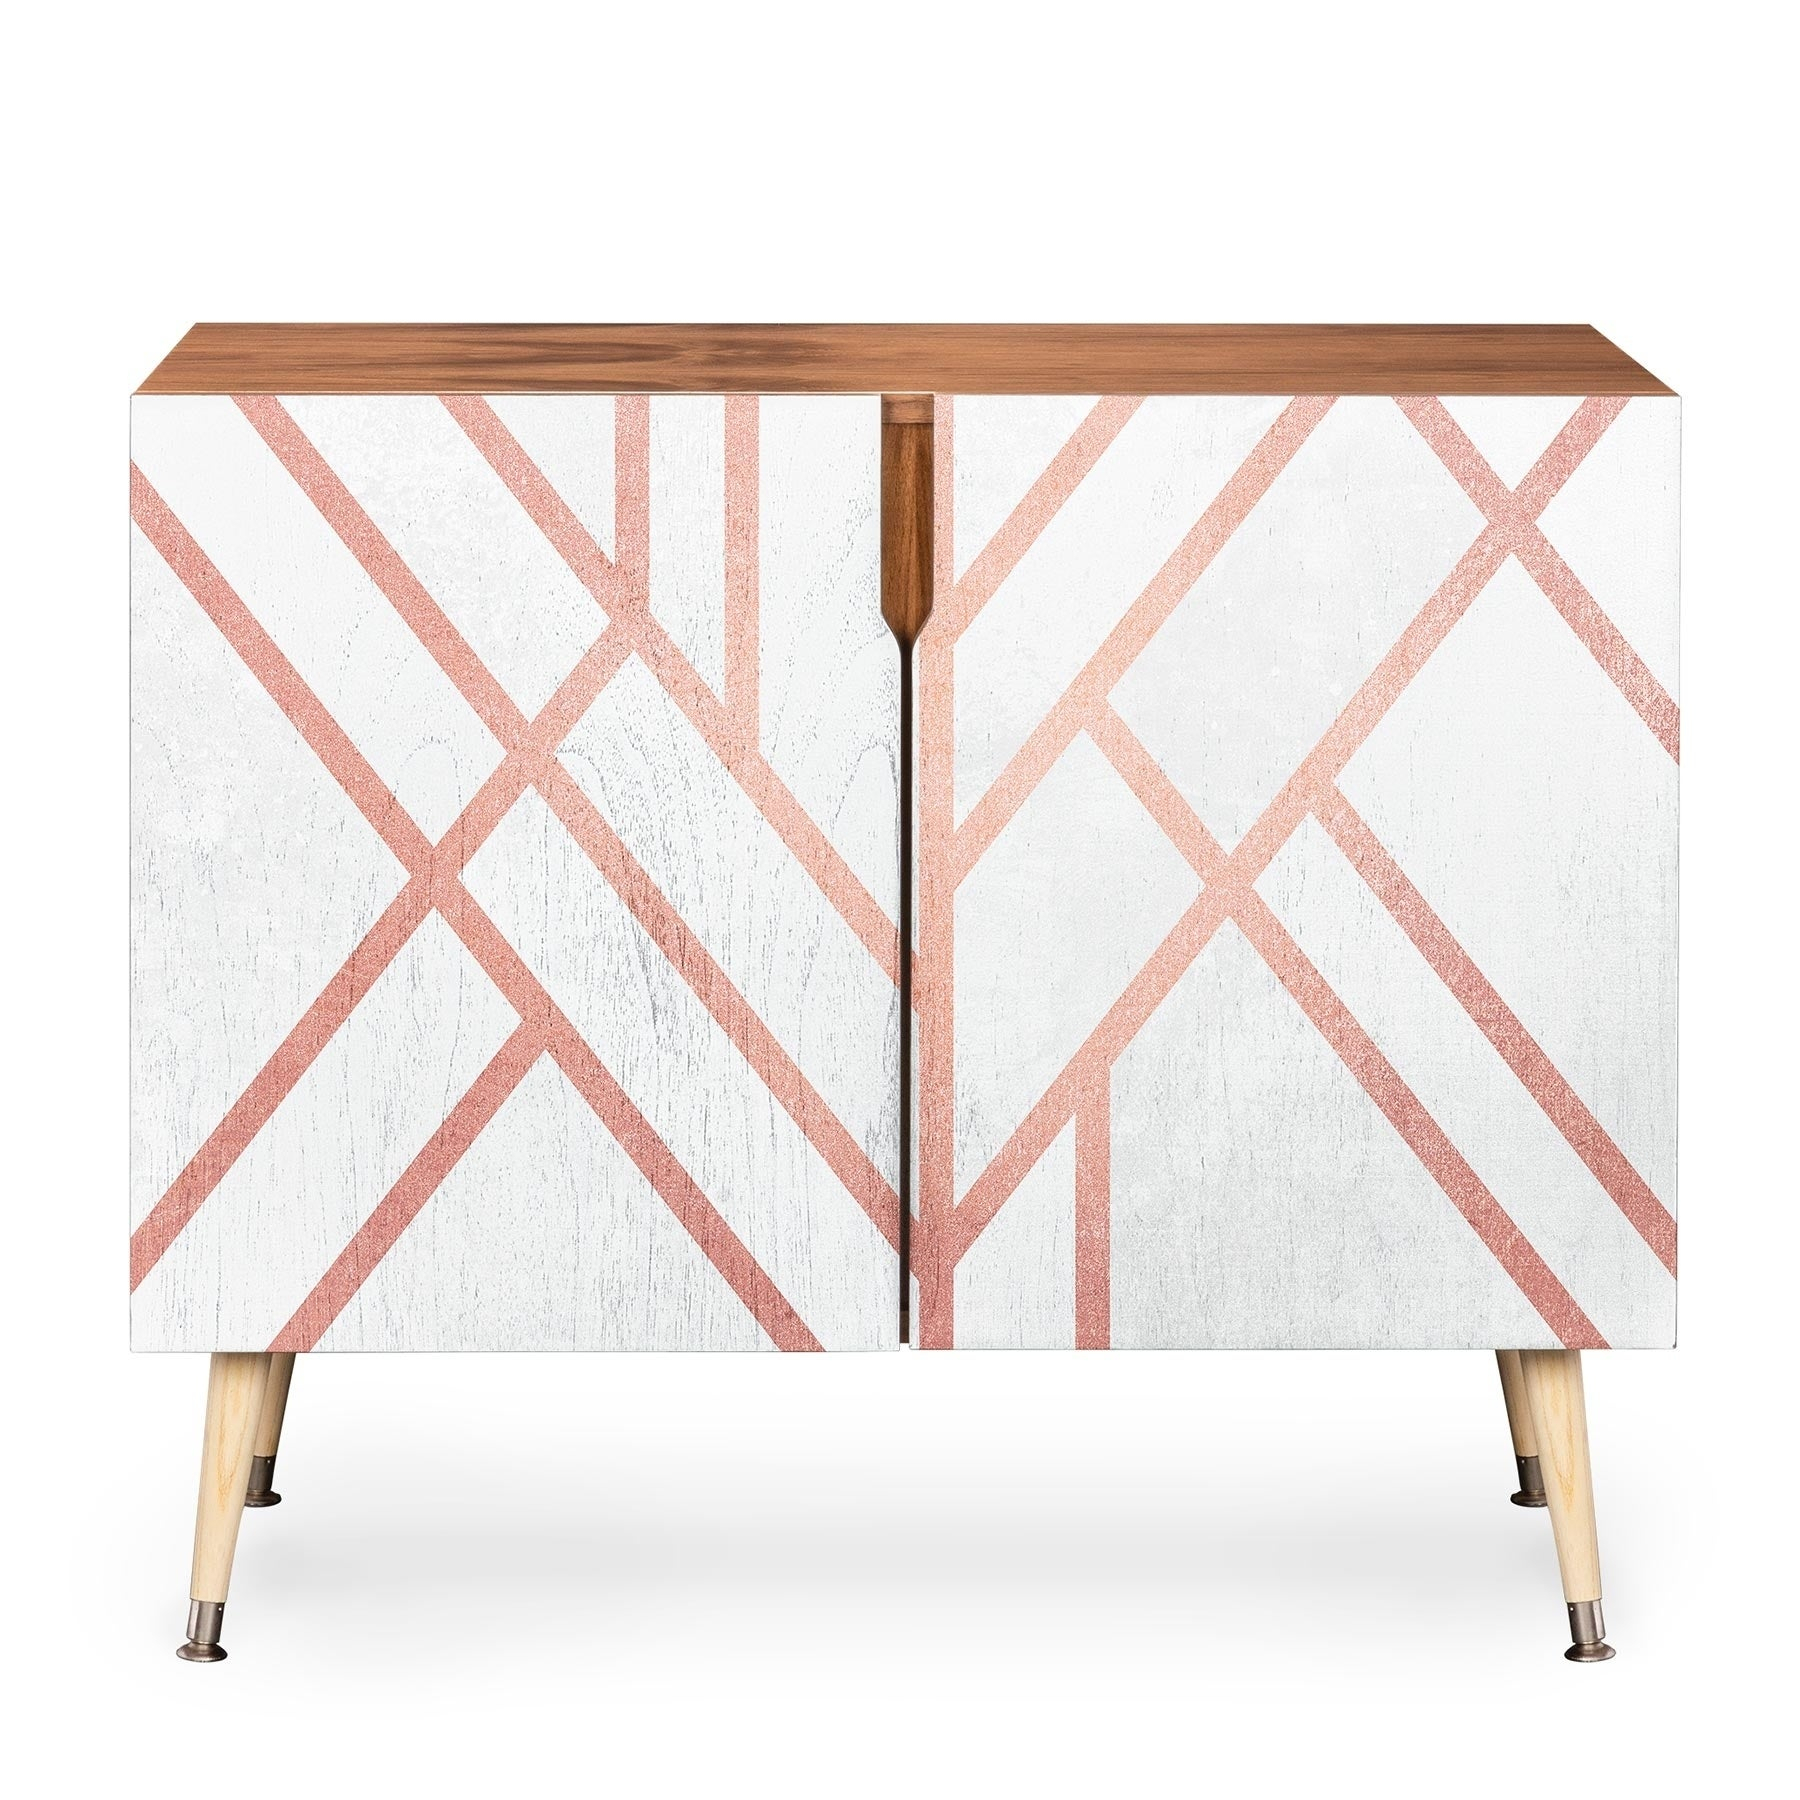 Deny Designs Pink And White Geometric Credenza (Birch Or Walnut, 3 Leg Options) With Regard To Pink And White Geometric Buffets (Gallery 1 of 30)